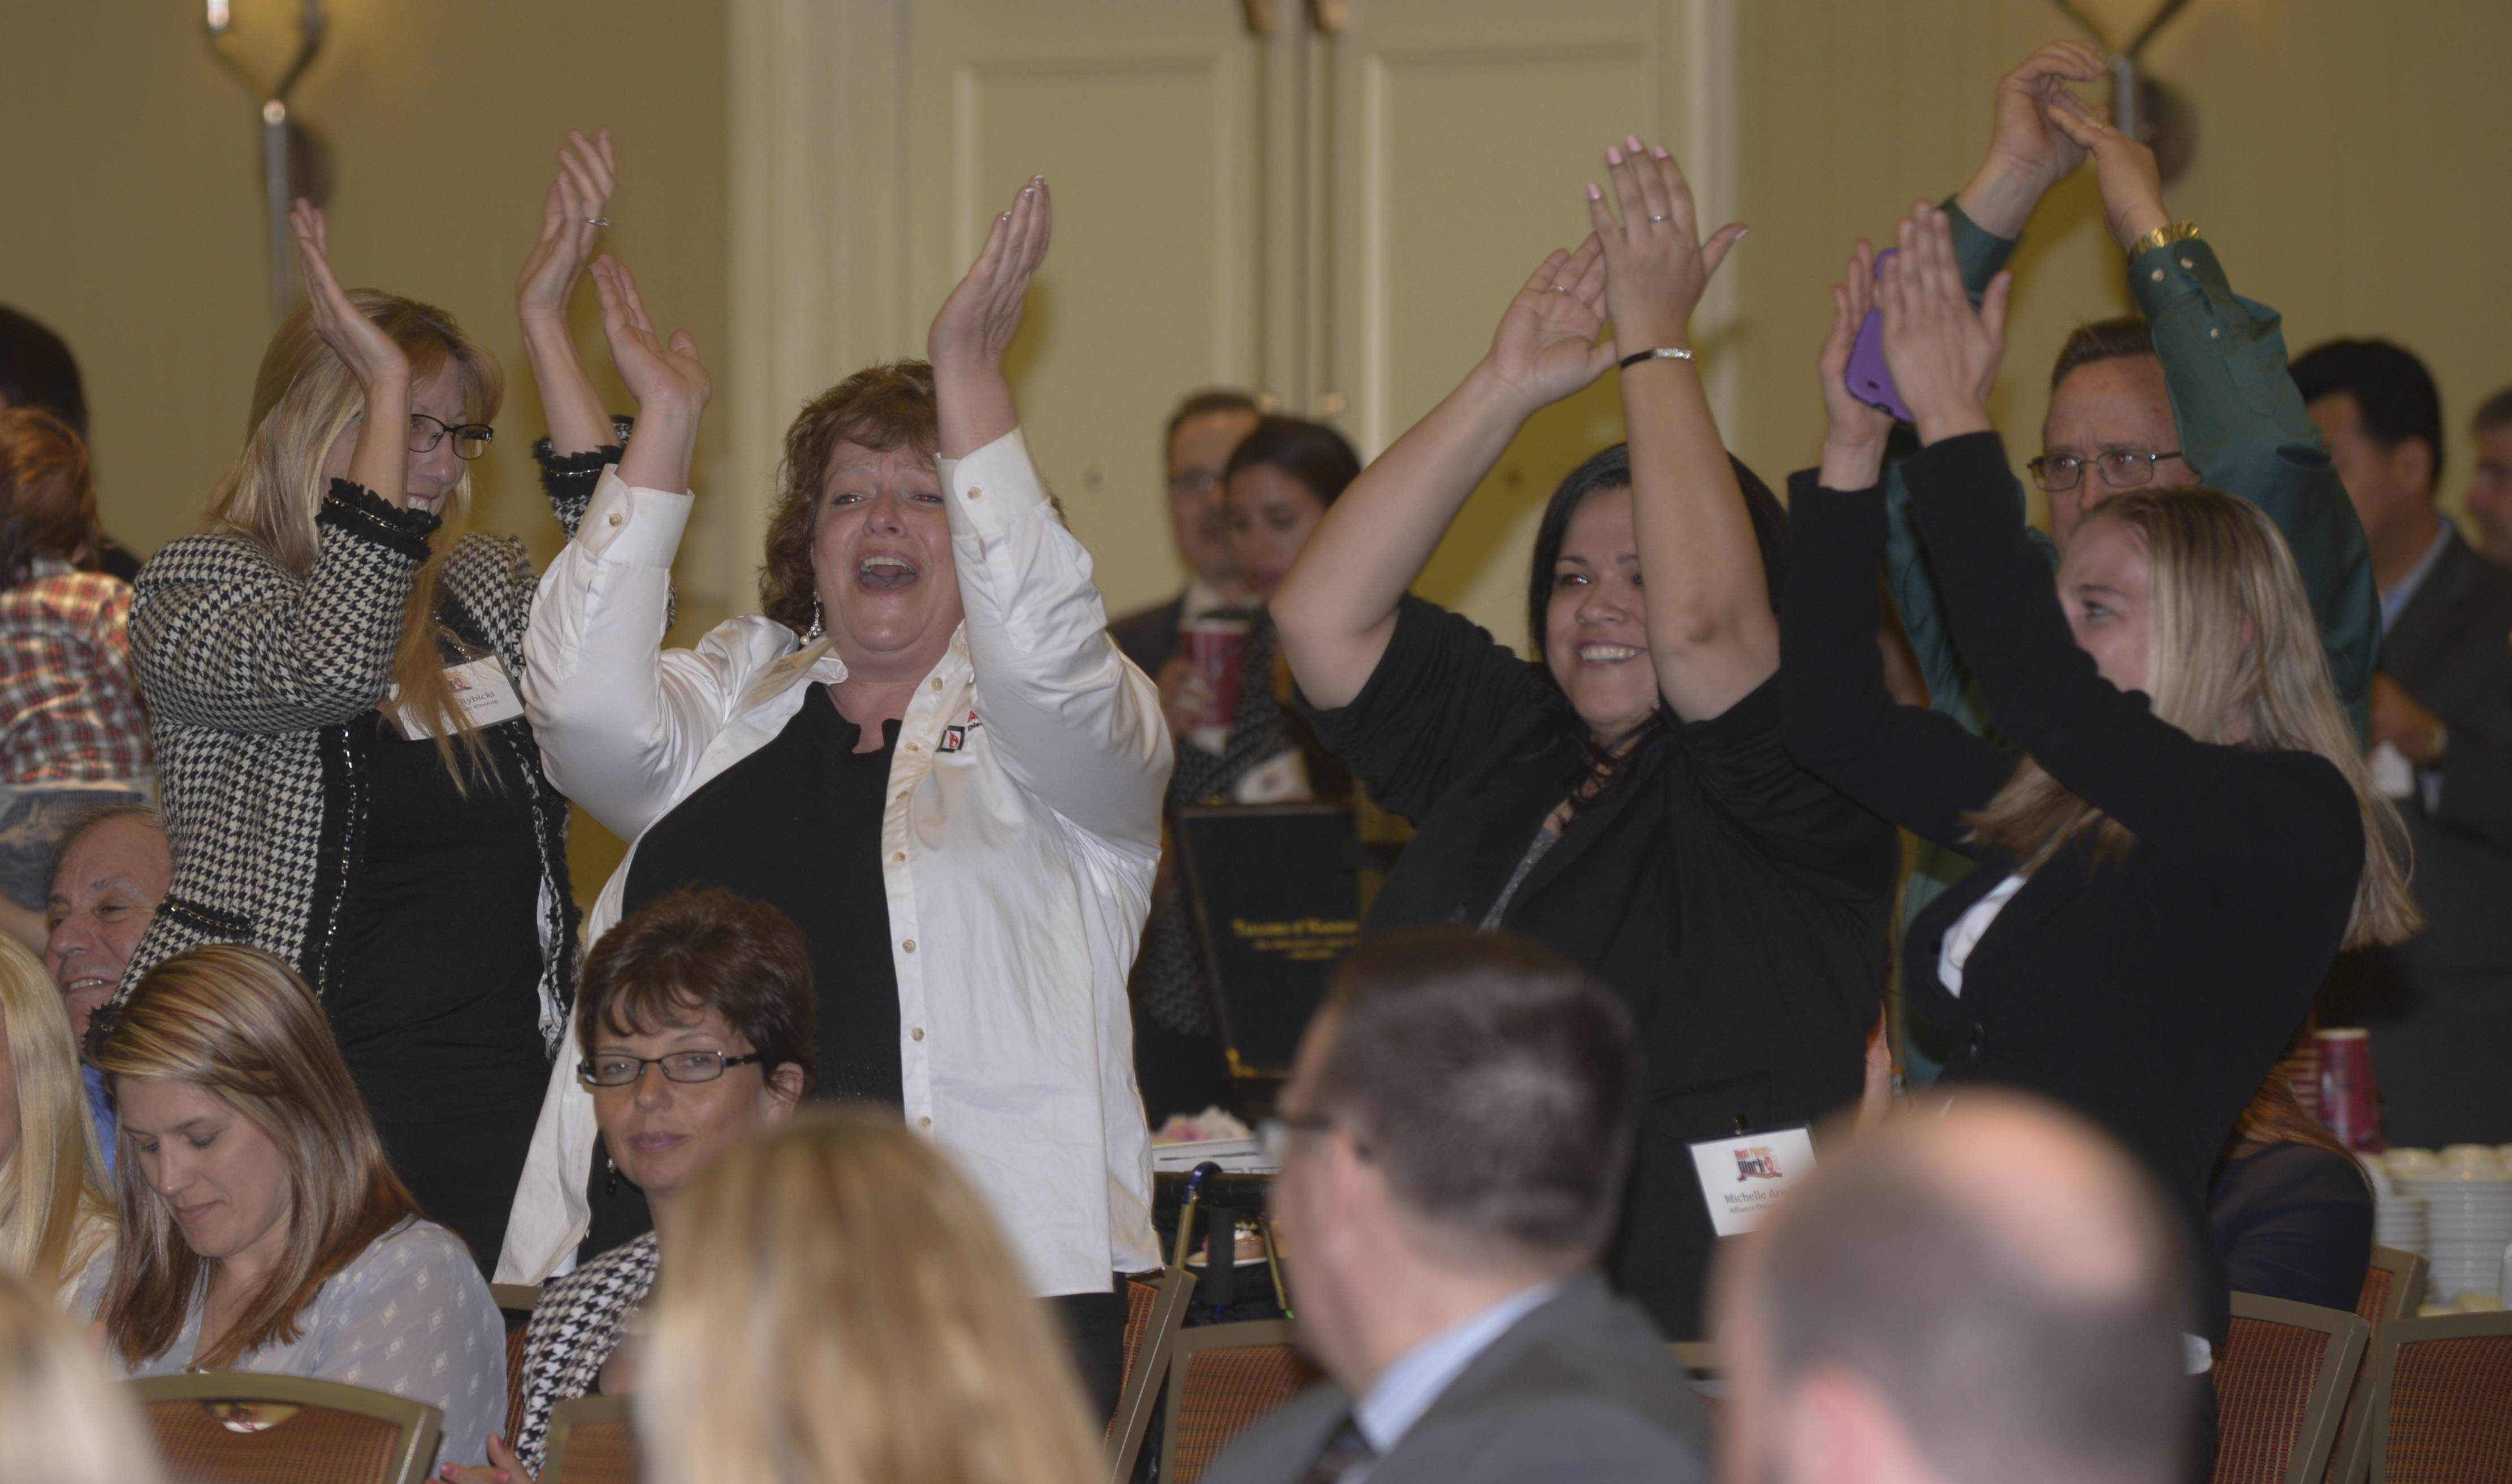 The group from Alliance Disaster Kleenup of Wheeling cheers as their company ranks 4th in the Small Employer division during the Daily Herald Business Ledger 10th annual Best Places to Work in Illinois award ceremony at the Oak Brook Hill Resort & Conference Center in Oak Brook.